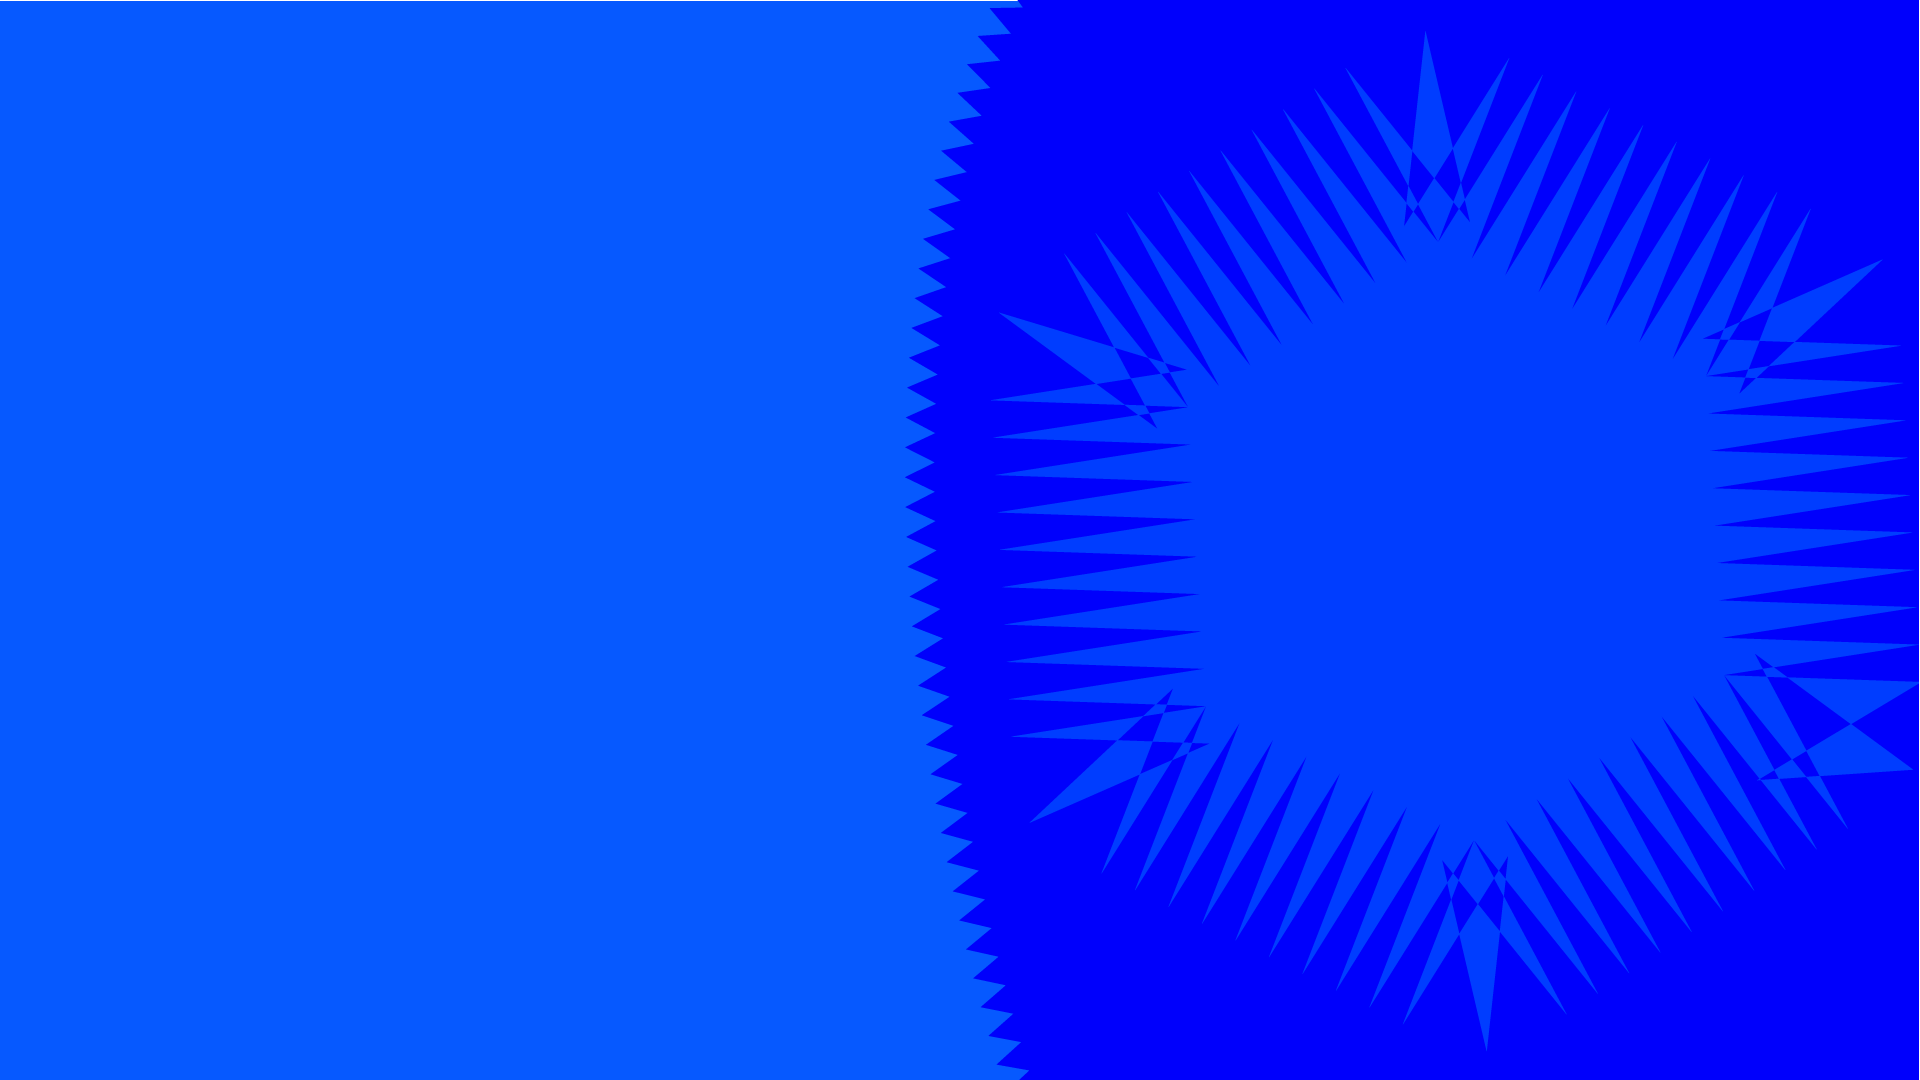 Blue Abstract Banner Background